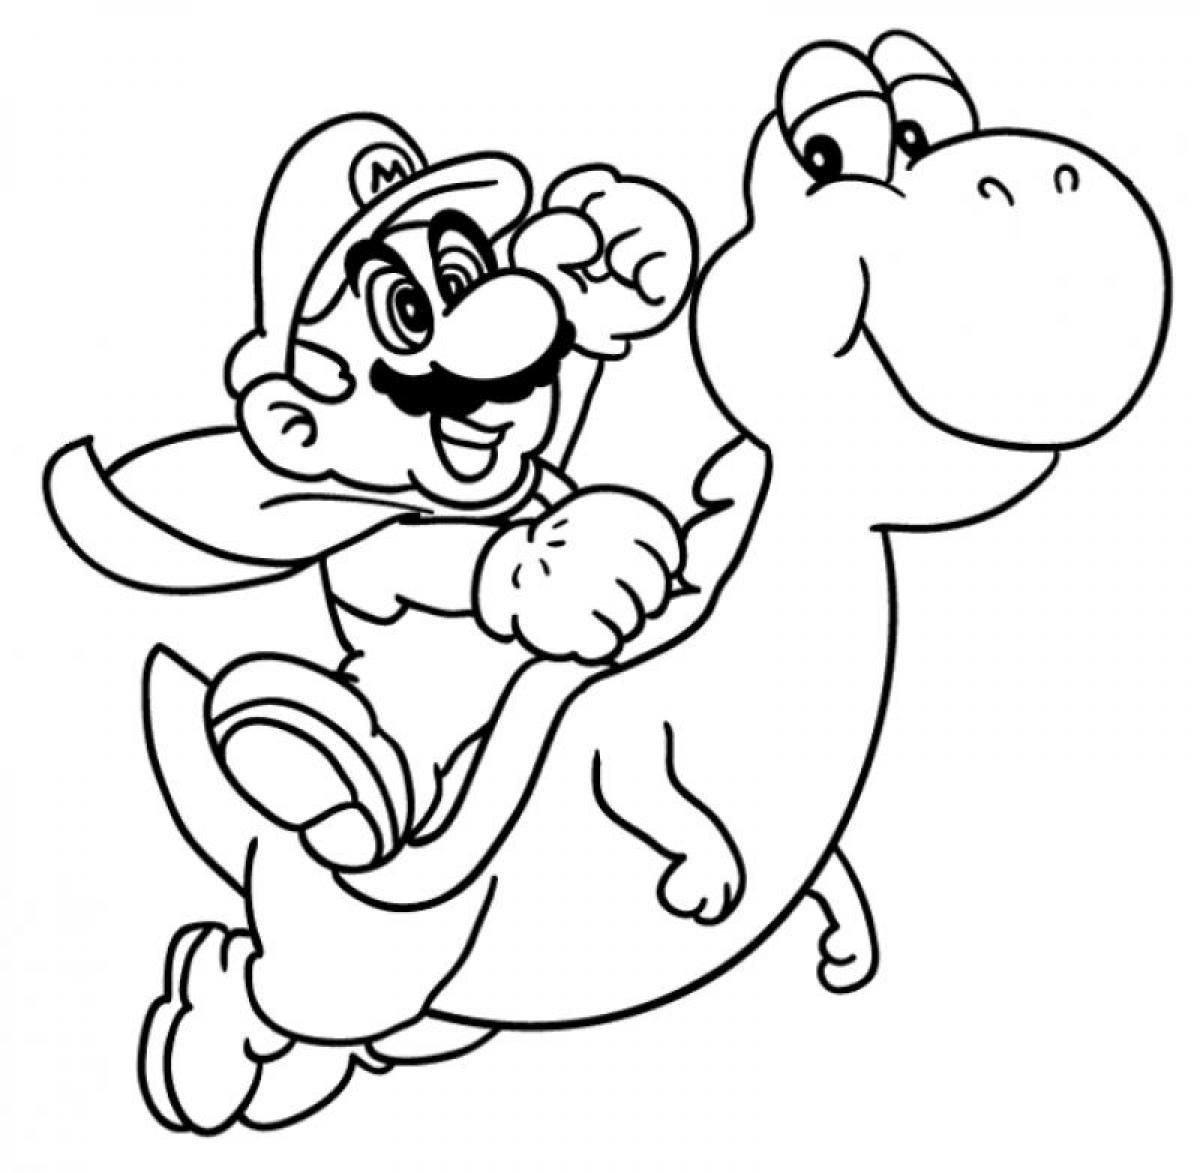 Mario Bros P Art Super Coloring Pages 13704 Inside Colouring ...